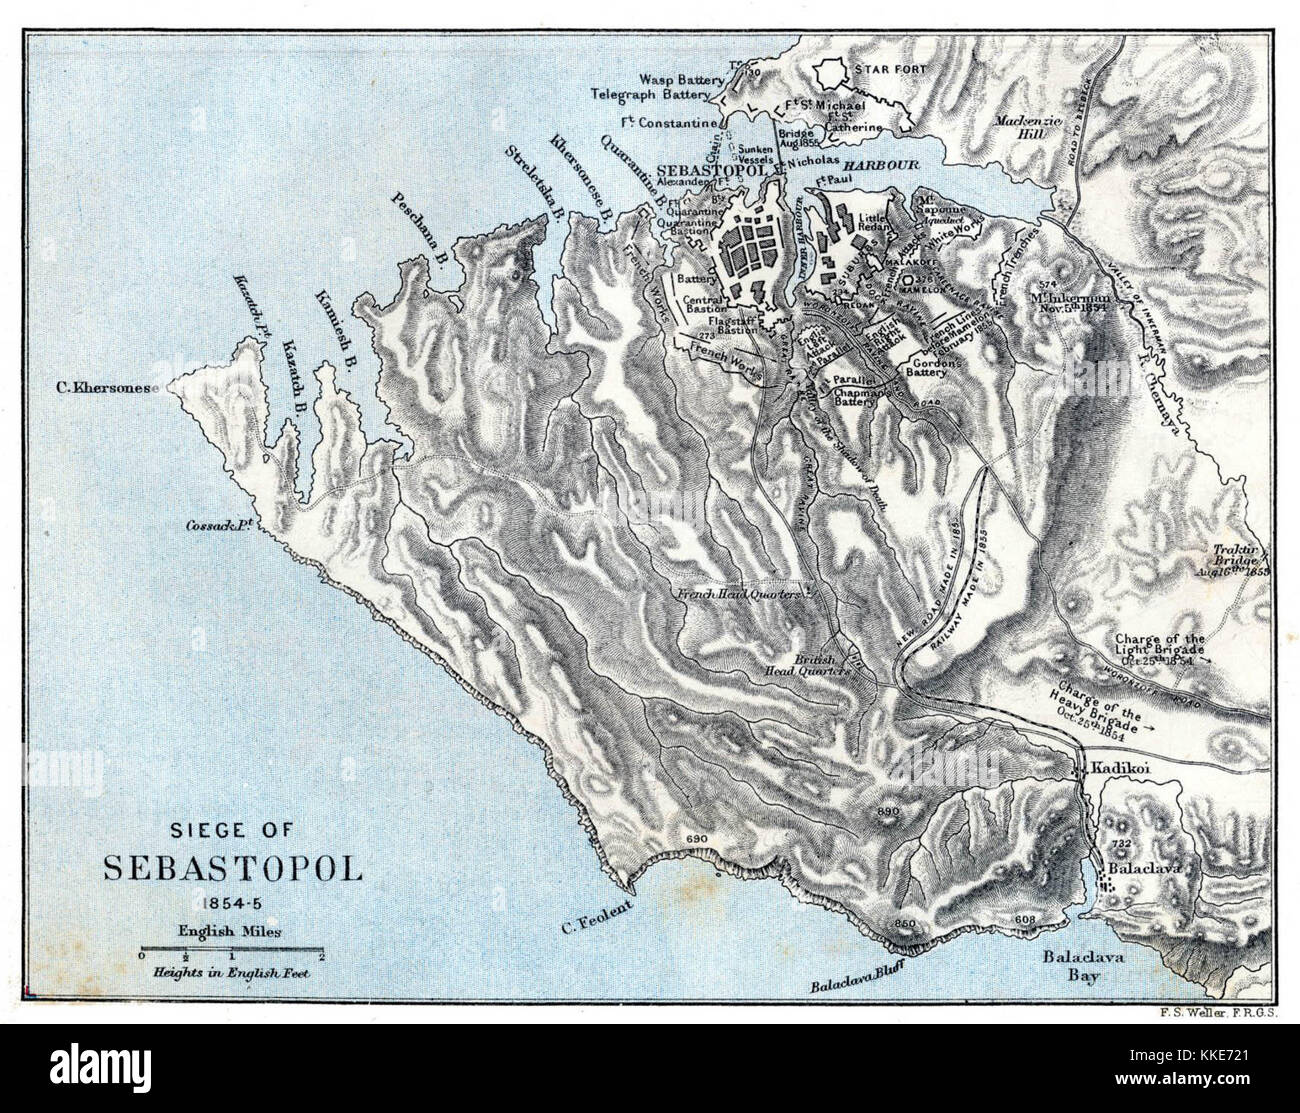 A historical map showing the territory between Balaclava and Sevastopol at the time of the Siege of Sevastopol - Stock Image